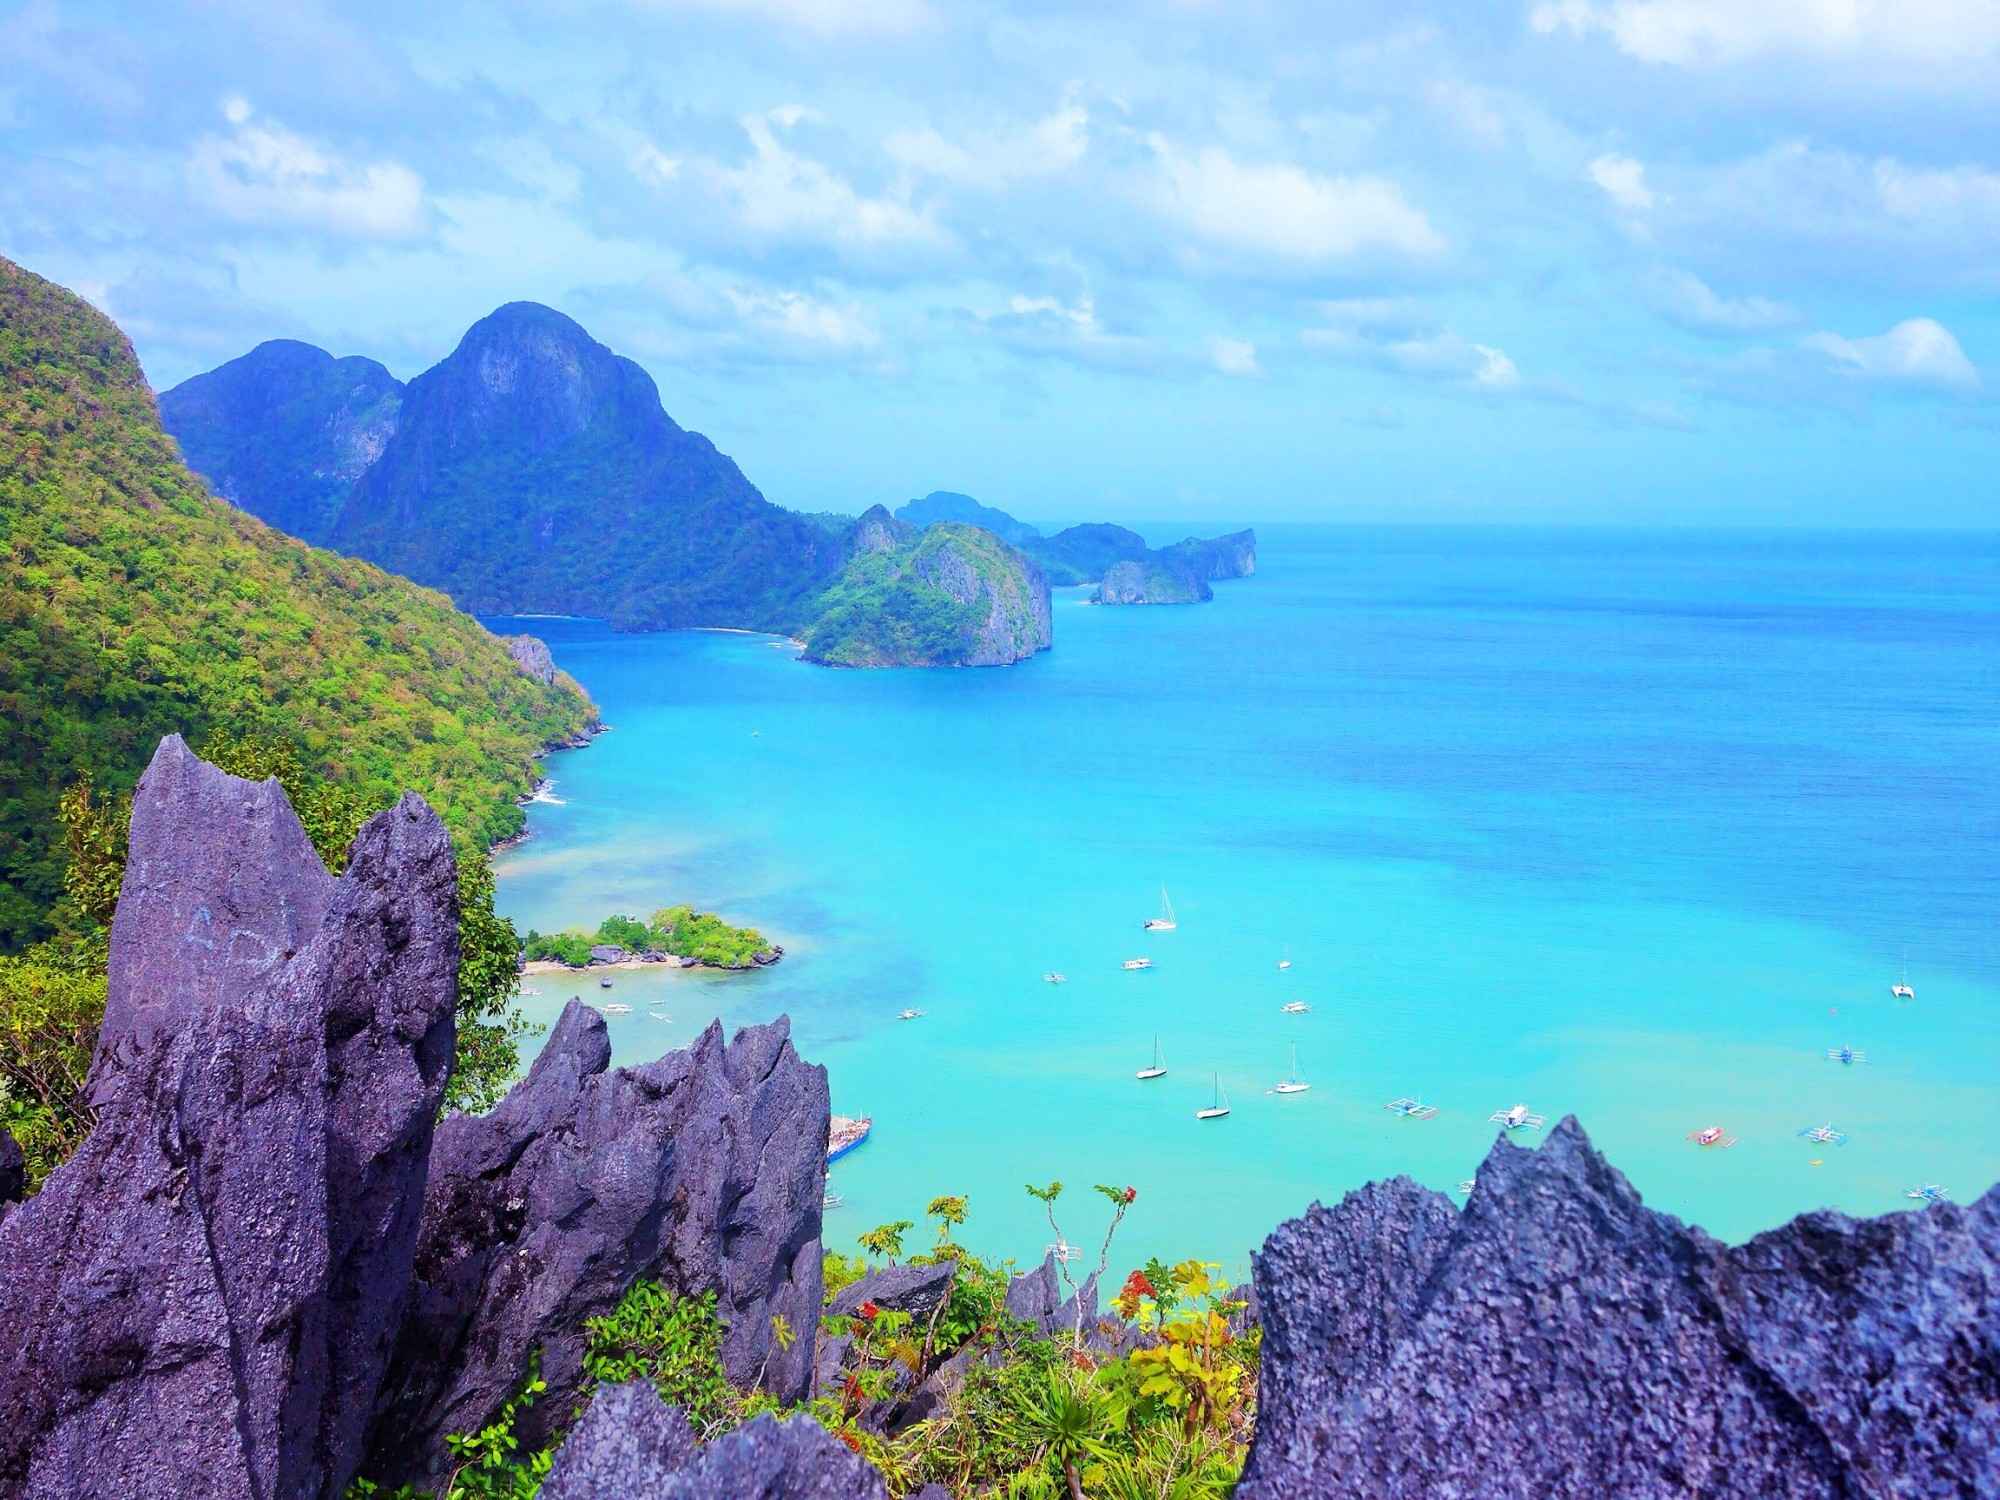 View from our climb up Taraw Cliff in El Nido, Palawan